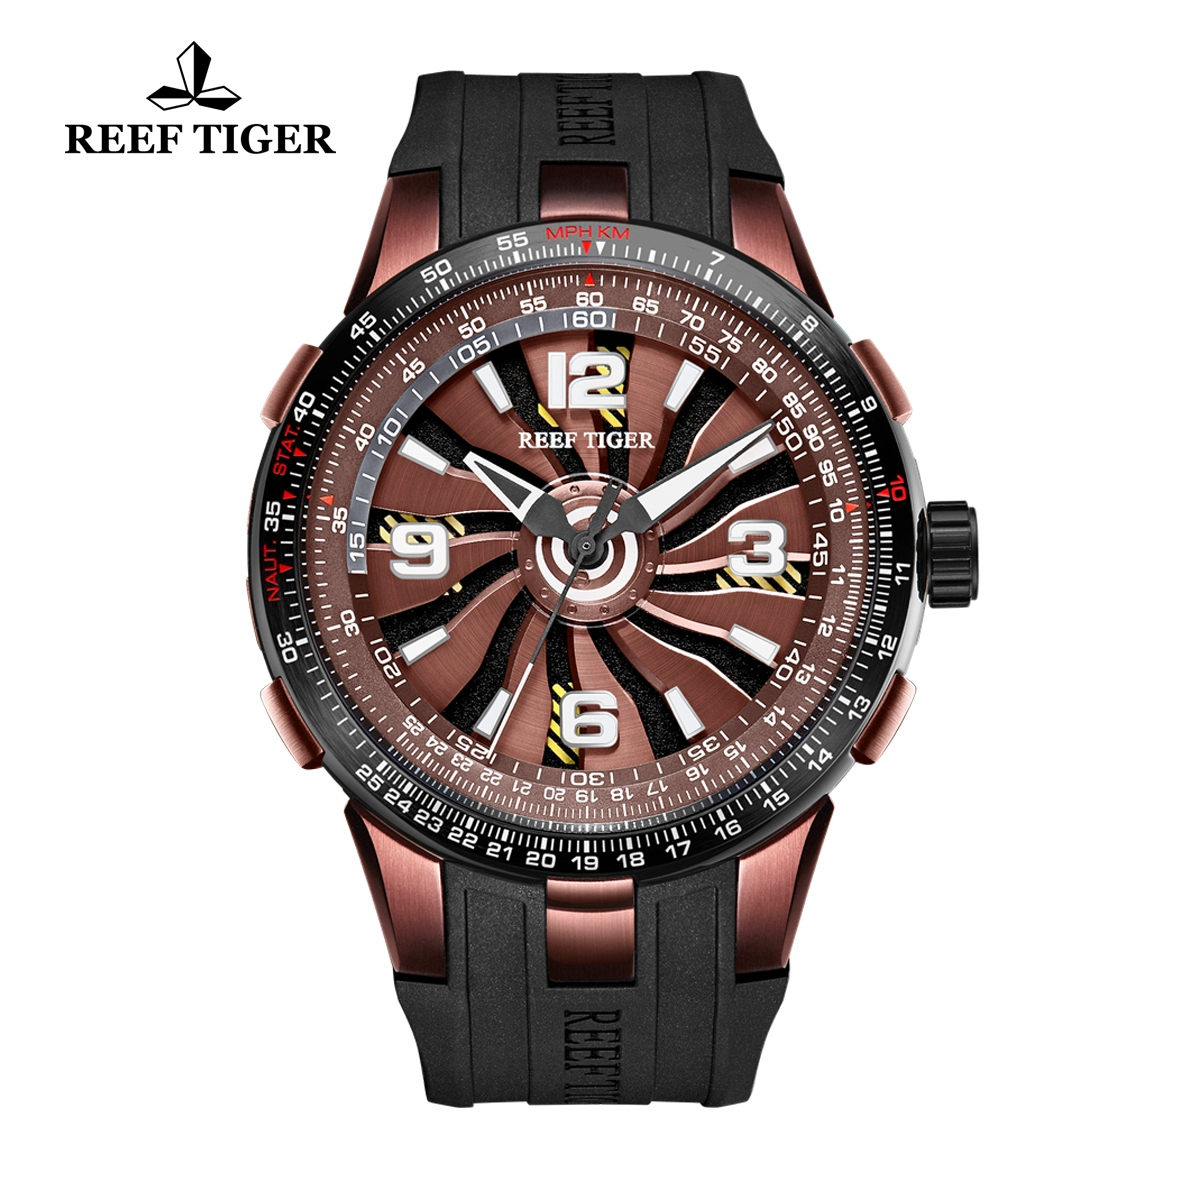 Reef Tiger Aurora Turbo Fashion Sport Watches Brown Dial Black Rubber Watch RGA3059-BSB